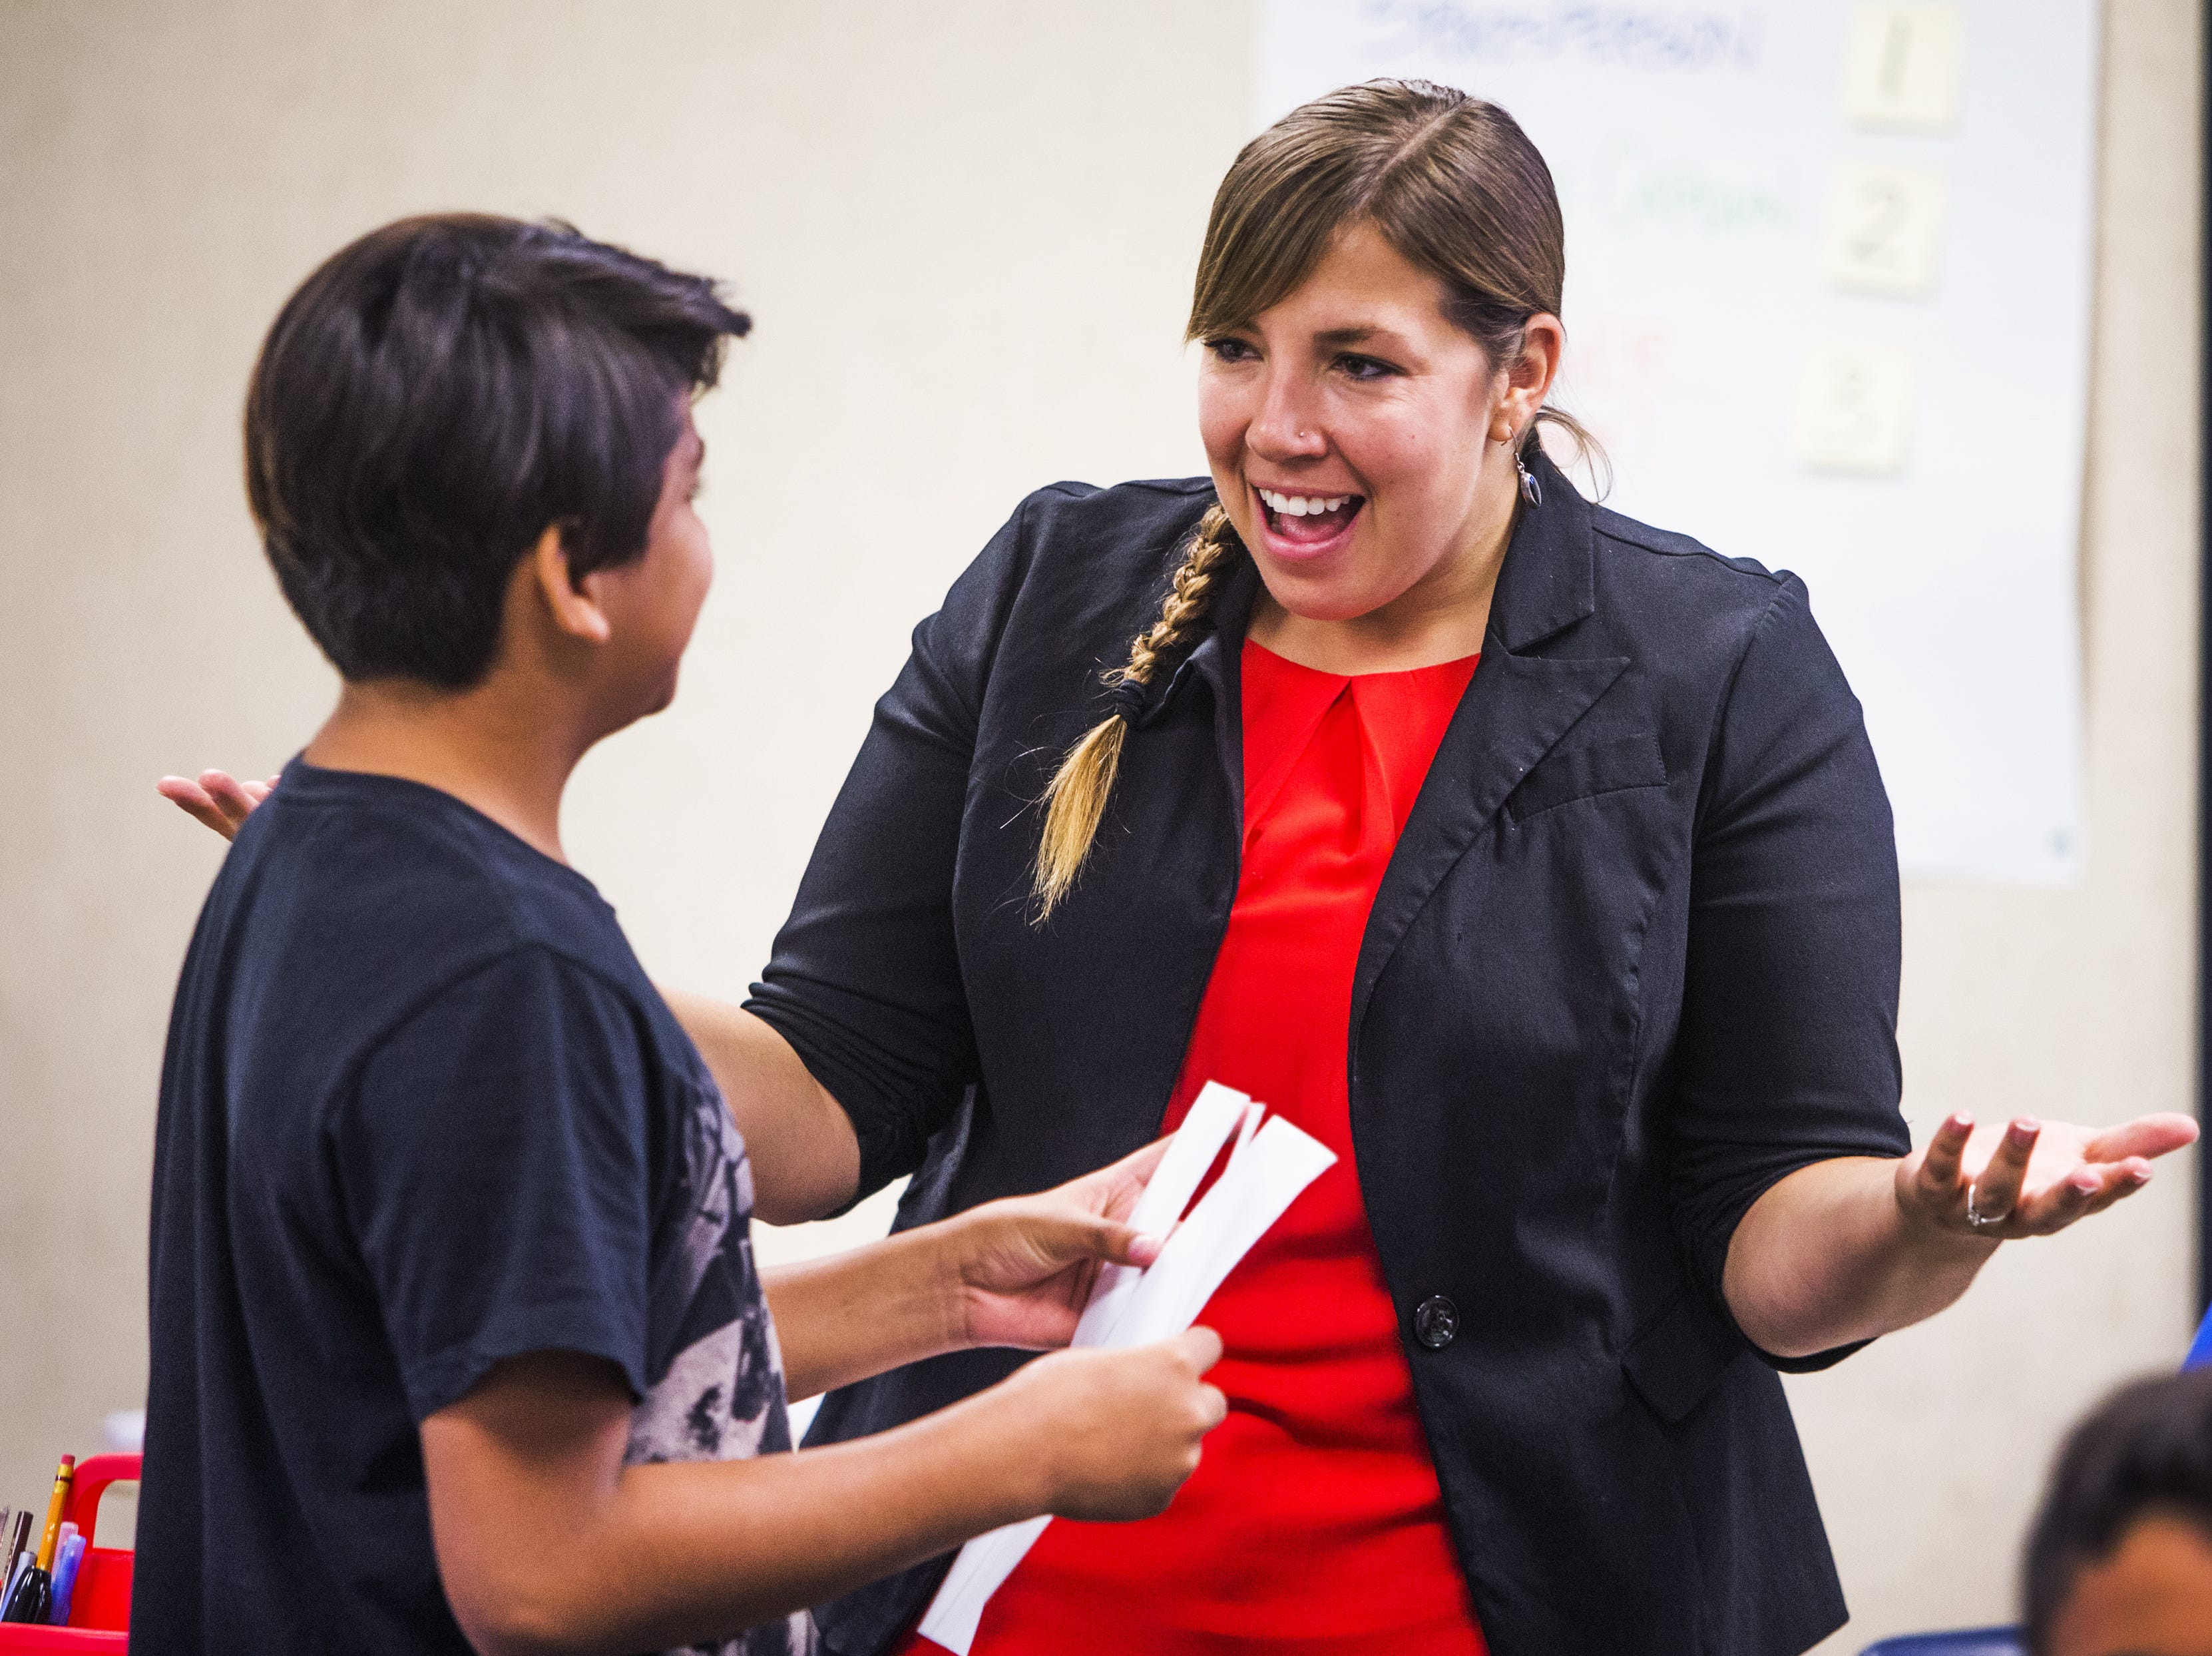 Rebecca Garelli speaks with a student in her 6th grade science class at Sevilla West Elementary School in Phoenix, Monday morning, September 17, 2018. Garelli has been one of the leaders of the #RedforEd movement, demanding increased funding for education in Arizona.